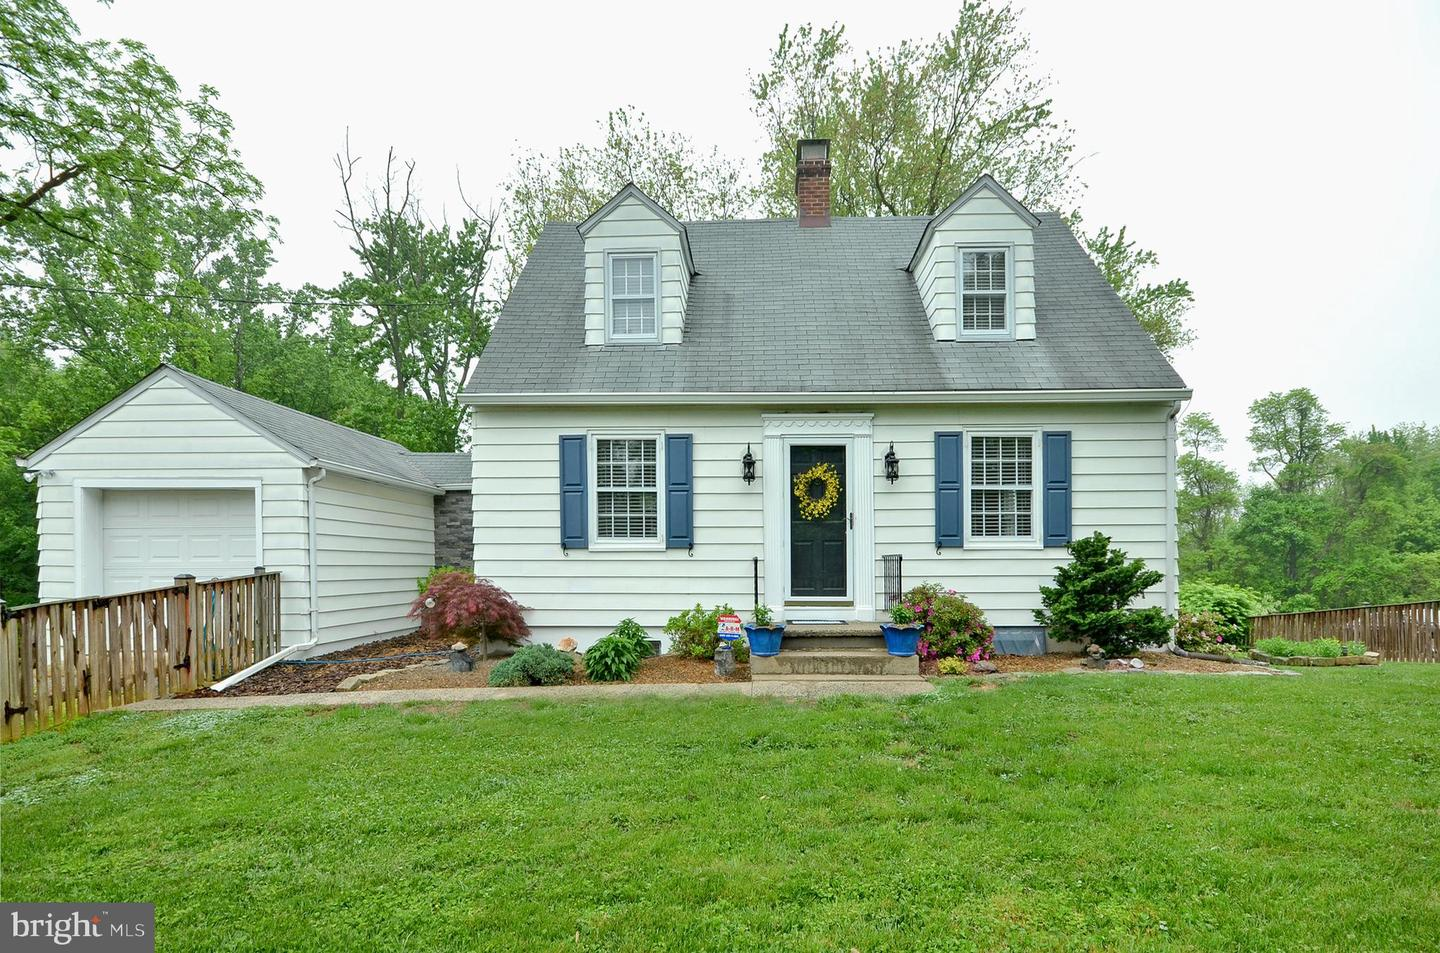 Single Family for Sale at 614 Monkton Rd 614 Monkton Rd Monkton, Maryland 21111 United States